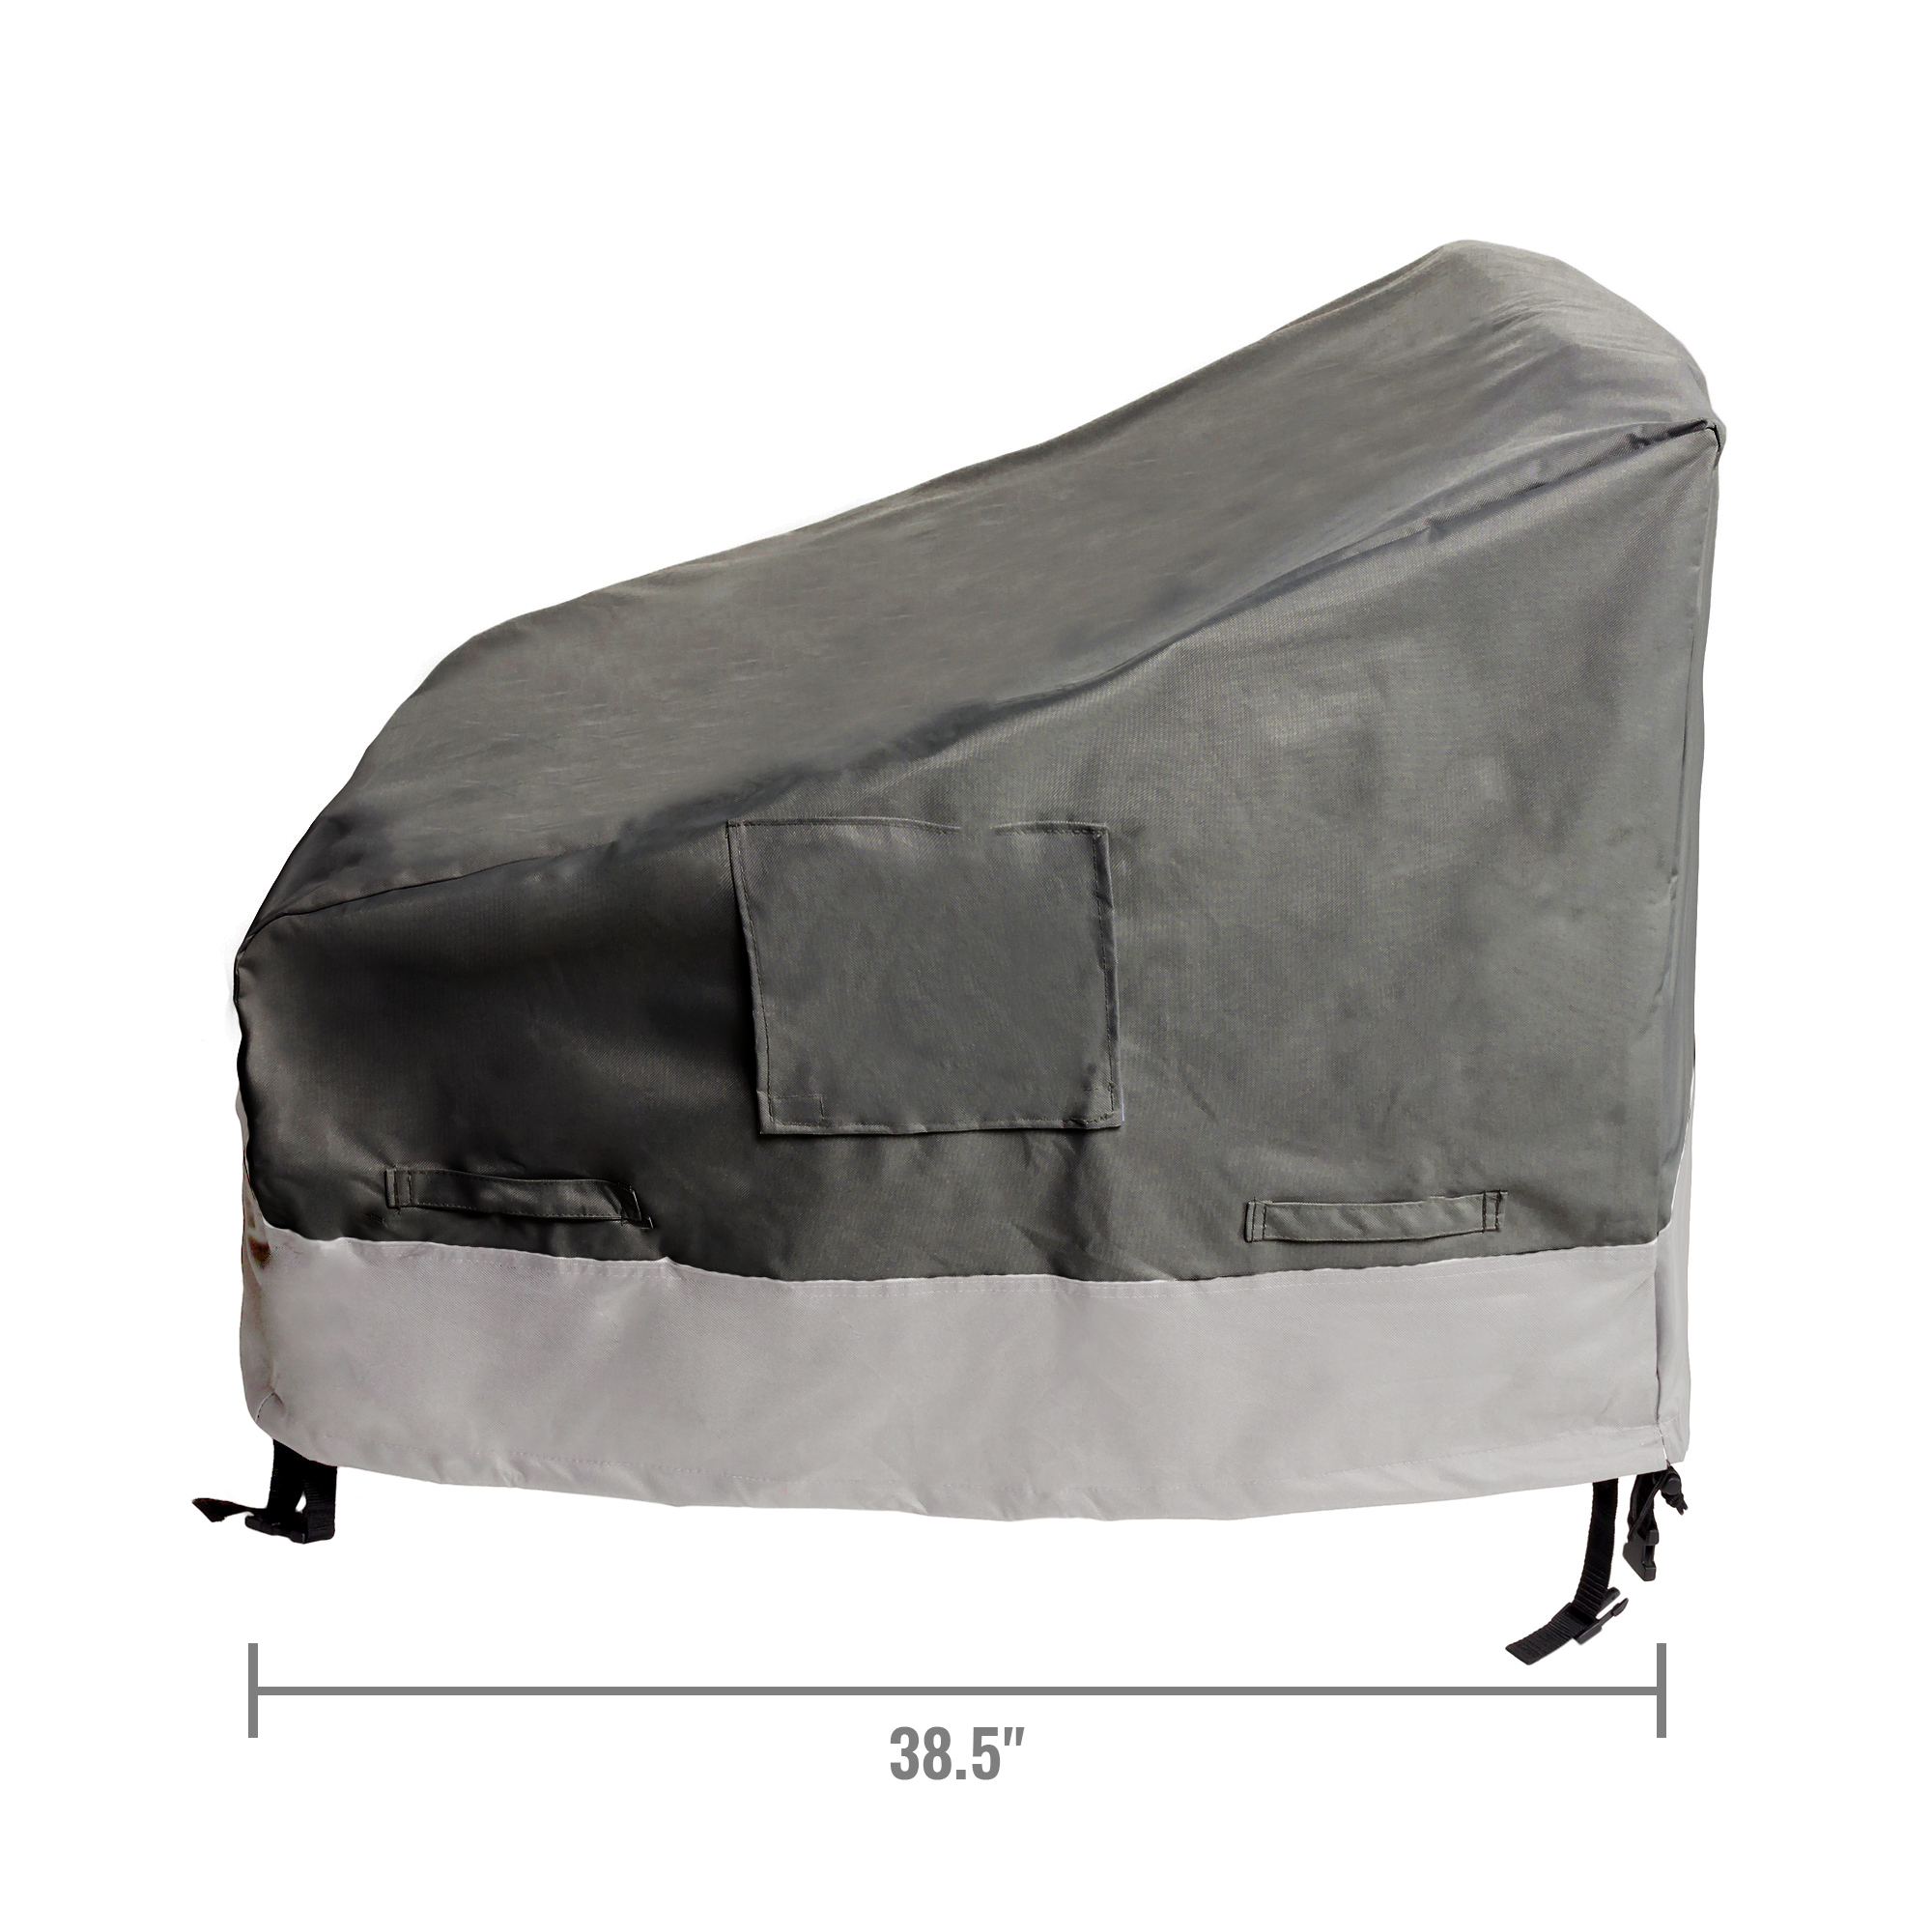 garden recliner chair covers fishing bed dimensions 2 pack deep seat outdoor furniture patio cover ebay